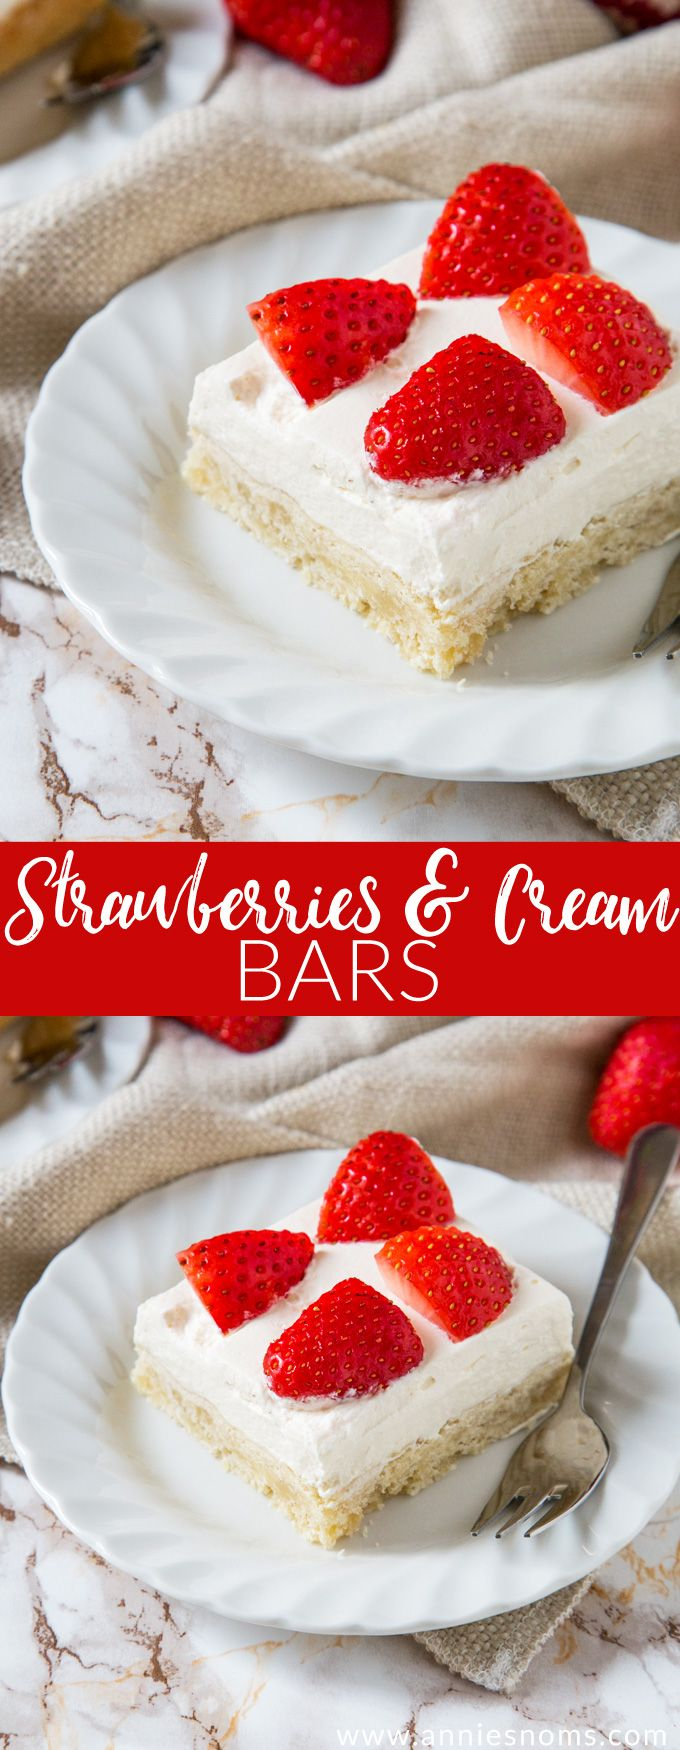 Buttery shortbread is layered with sweetened cream and fresh strawberries to create a flavour explosion in every bite of these Strawberries and Cream Bars!